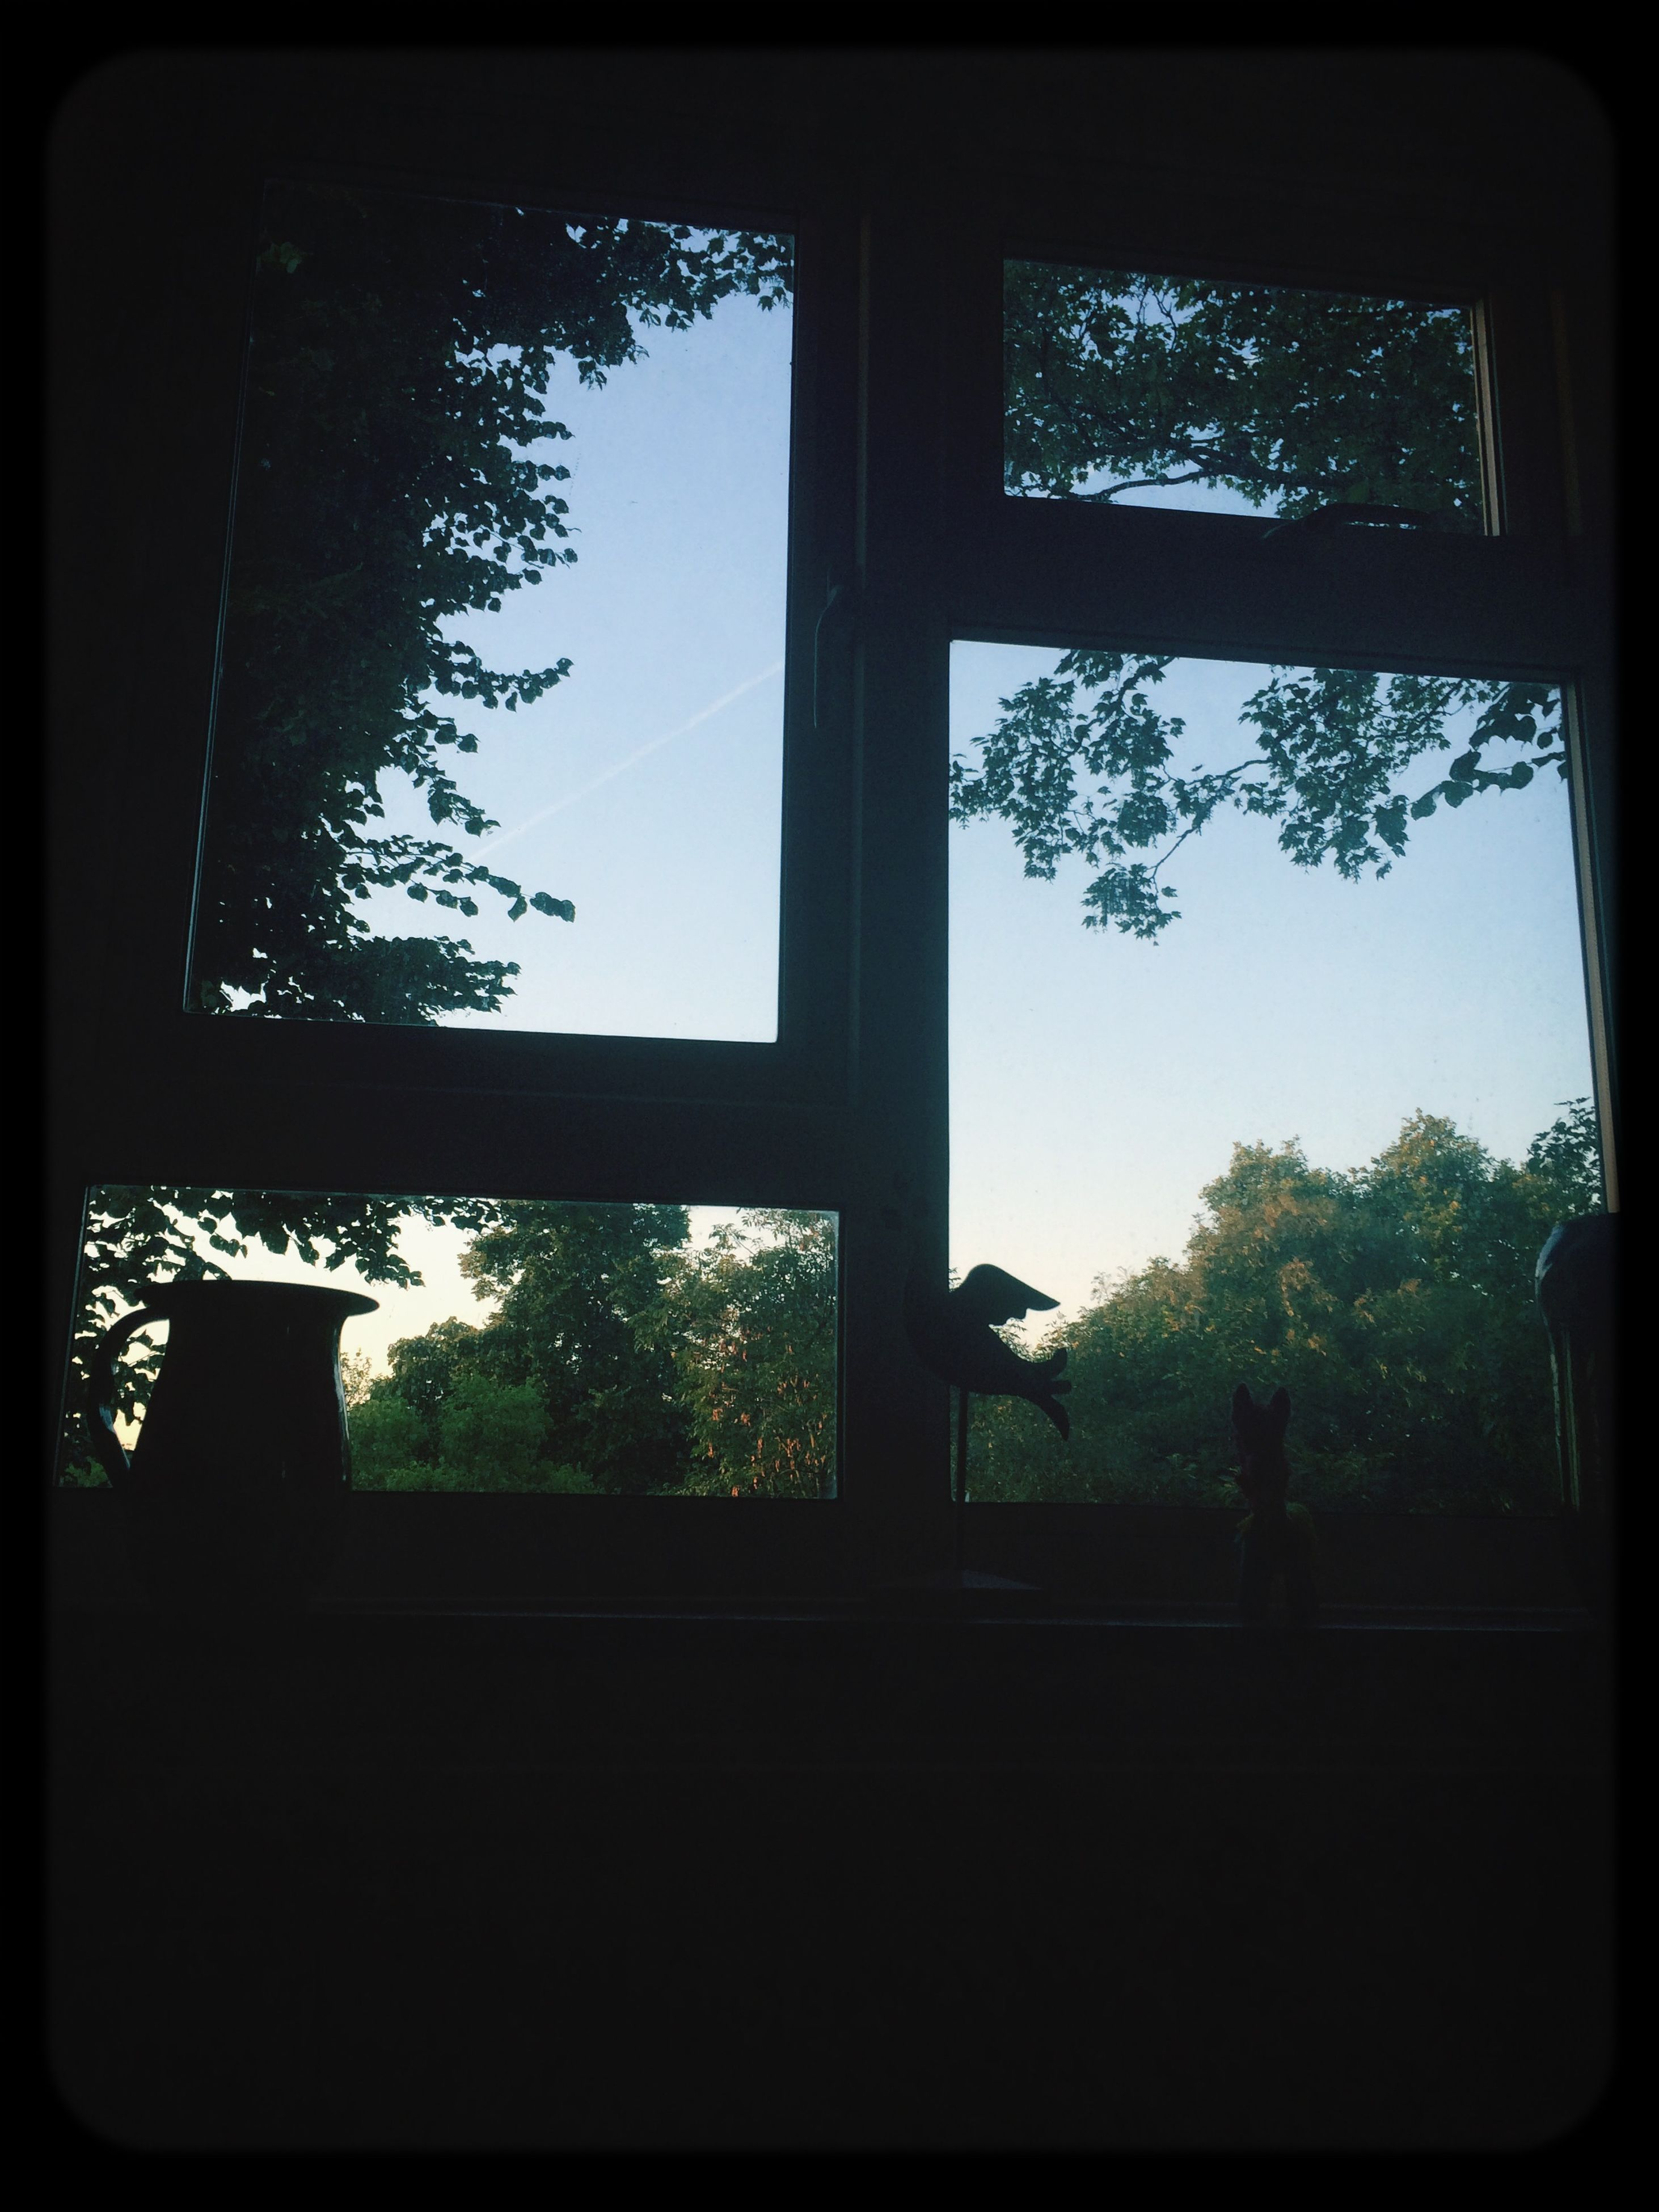 window, transfer print, indoors, tree, glass - material, built structure, transparent, architecture, auto post production filter, silhouette, low angle view, house, sky, day, dark, no people, home interior, building exterior, window frame, growth